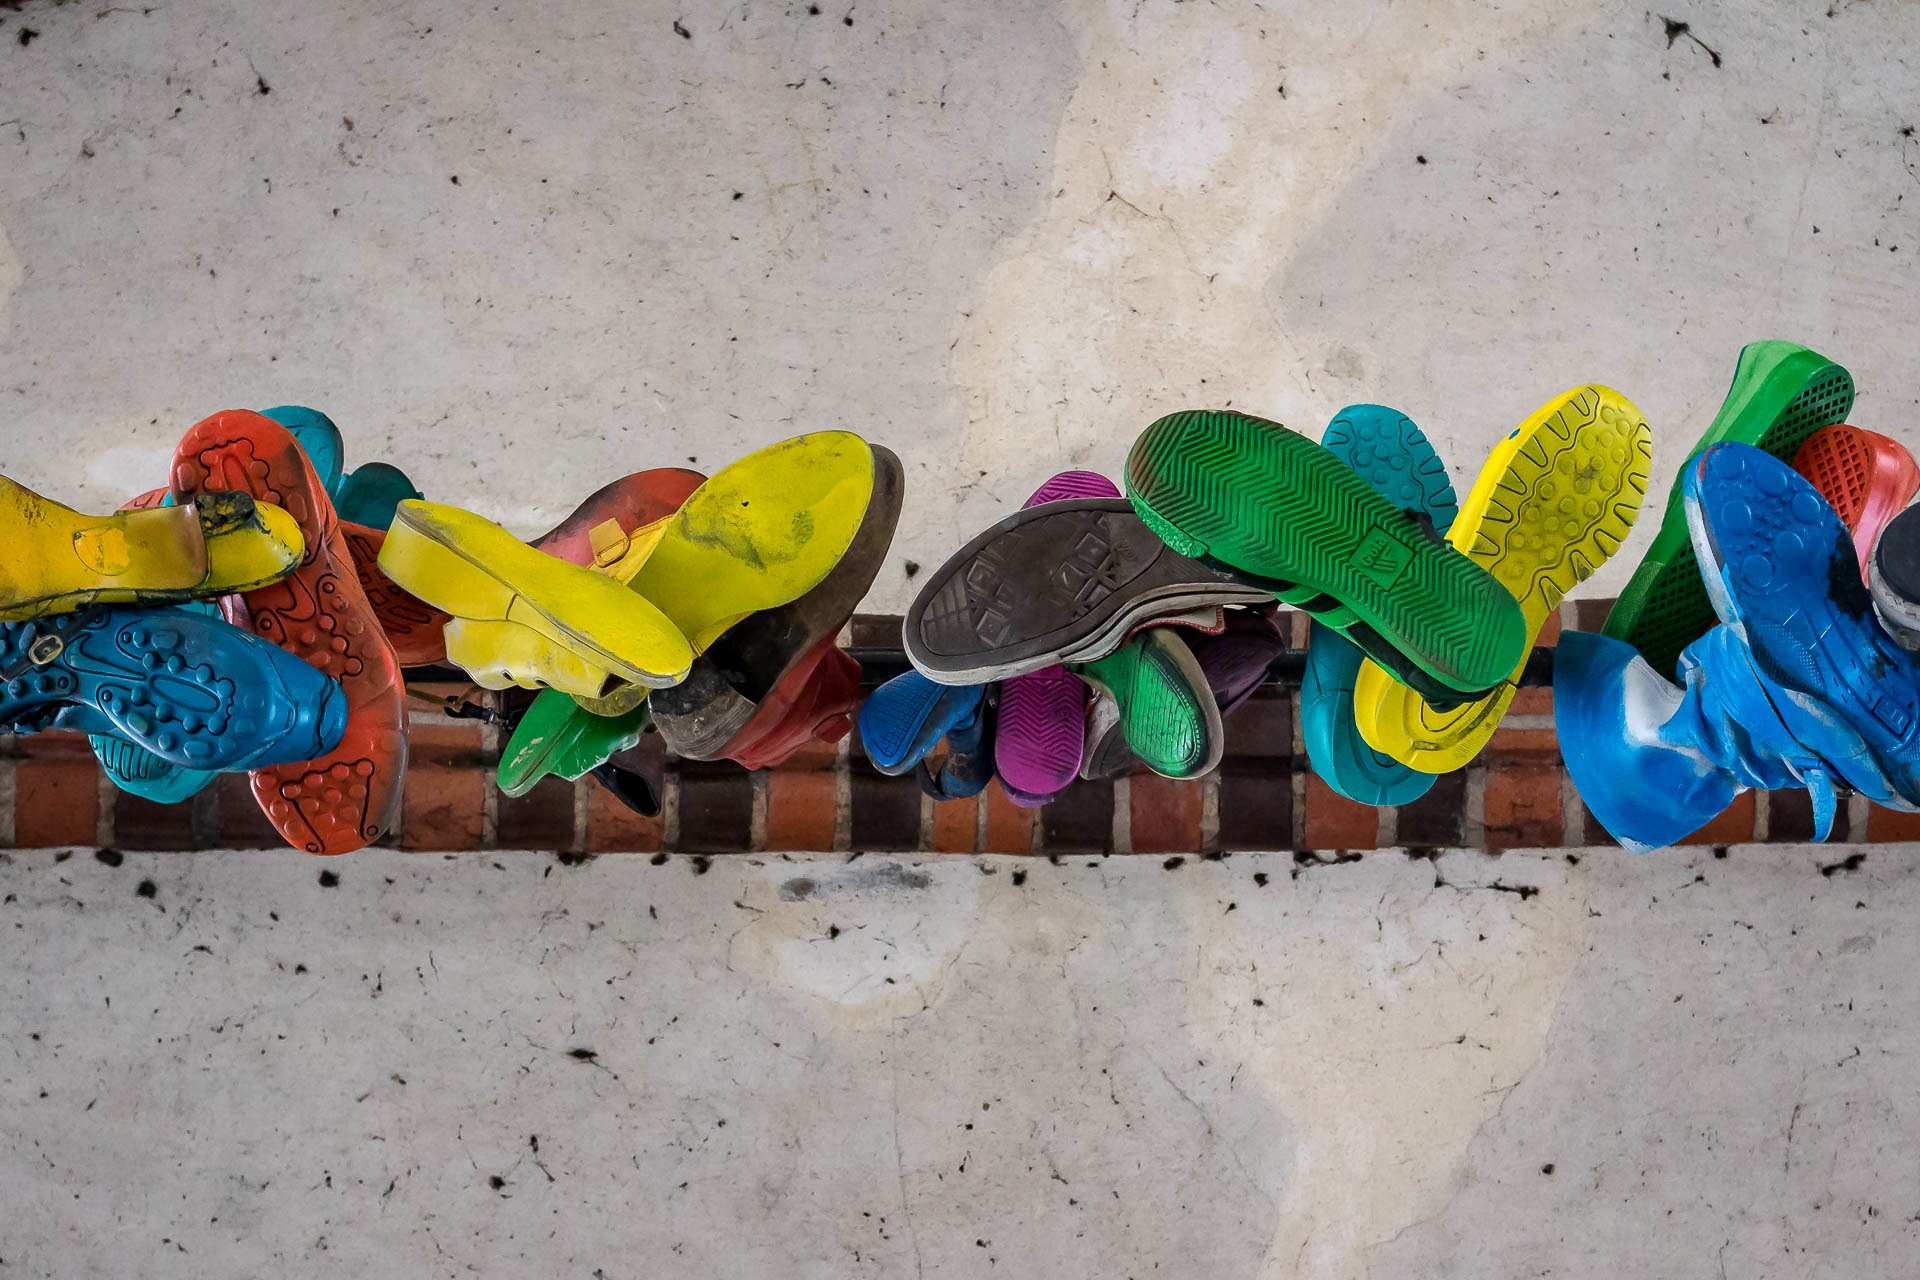 Shoes hanging down by JeckstadtPhotography